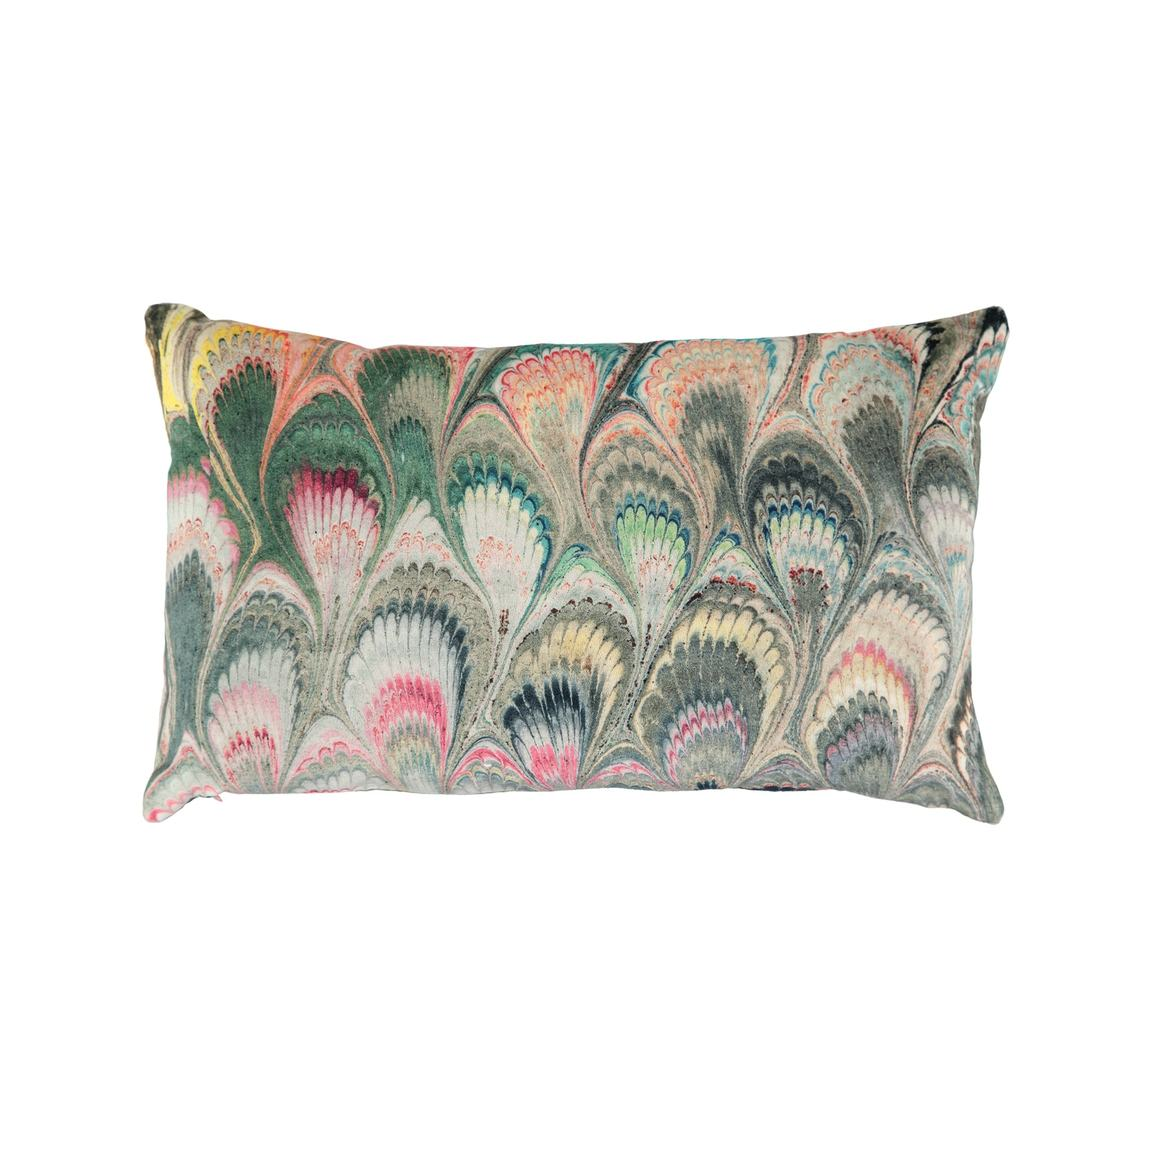 Marbleized Velvet Cushion